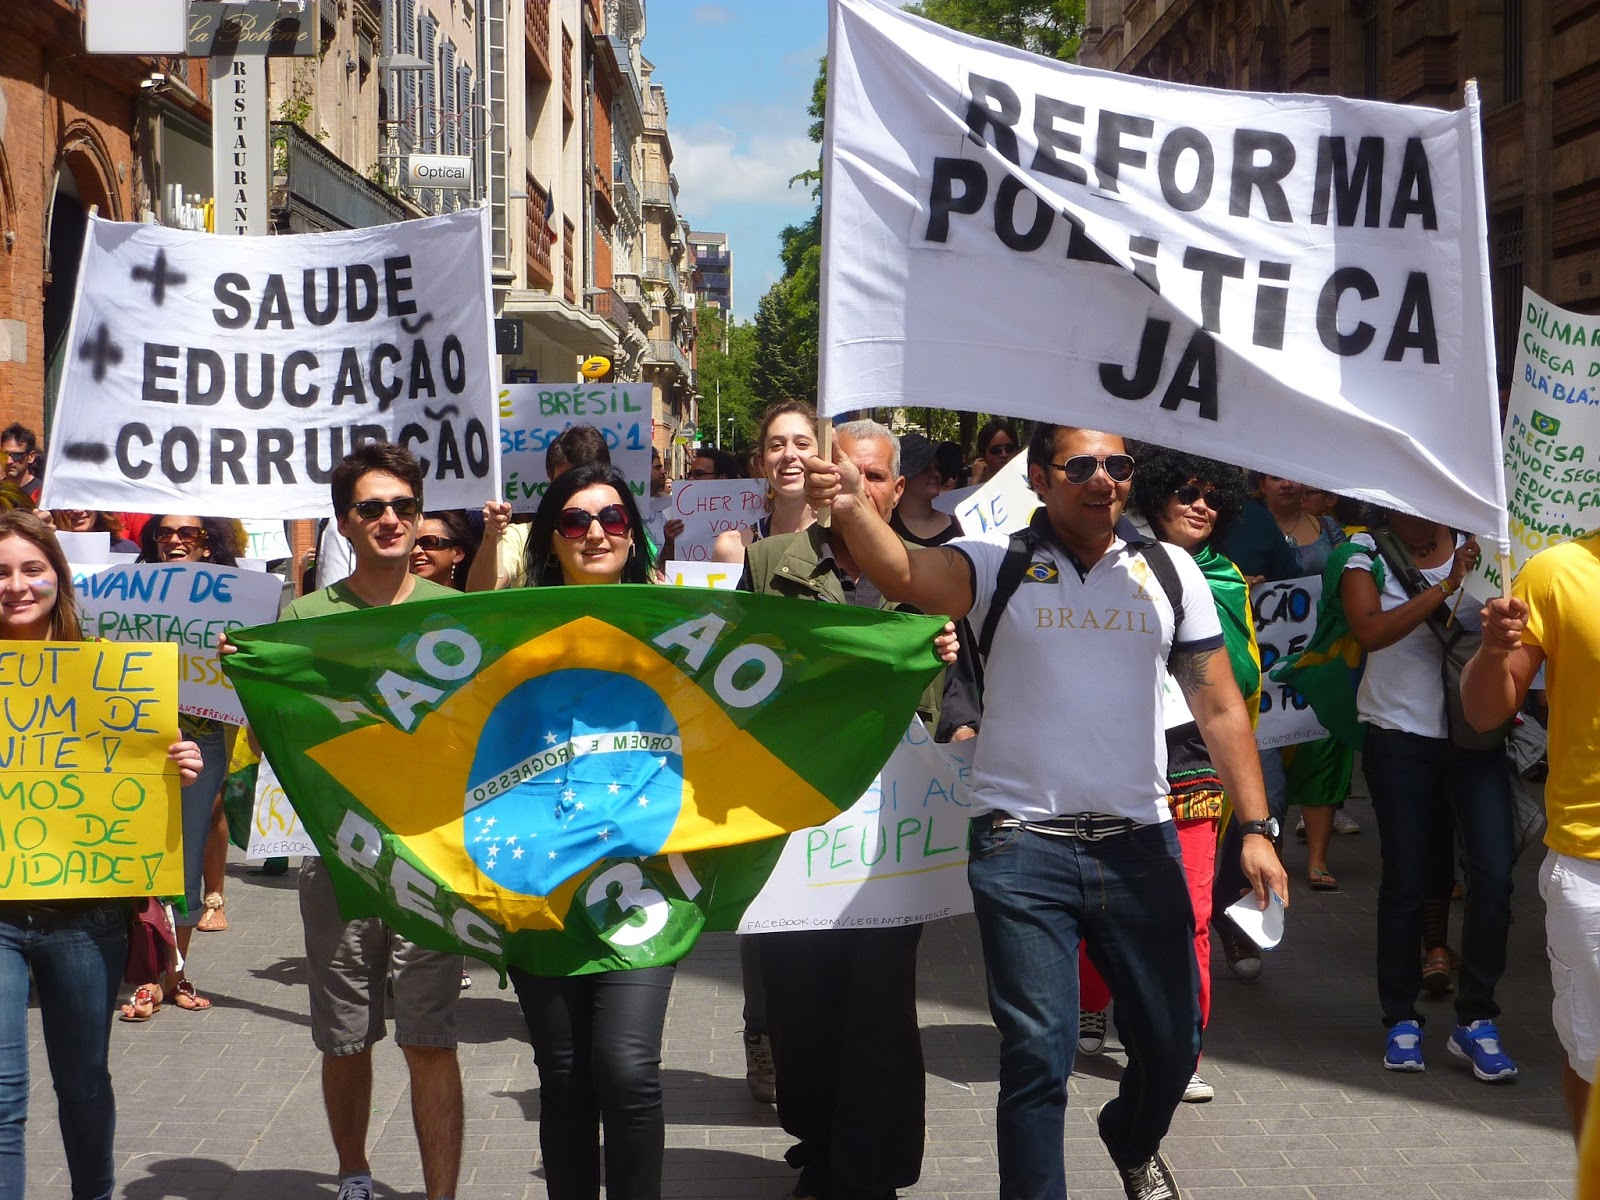 contemporary brazil essay Sample essay & discussion questions on developing politics & terrorism click each book title for essay what are the political shortcomings of modern brazil.